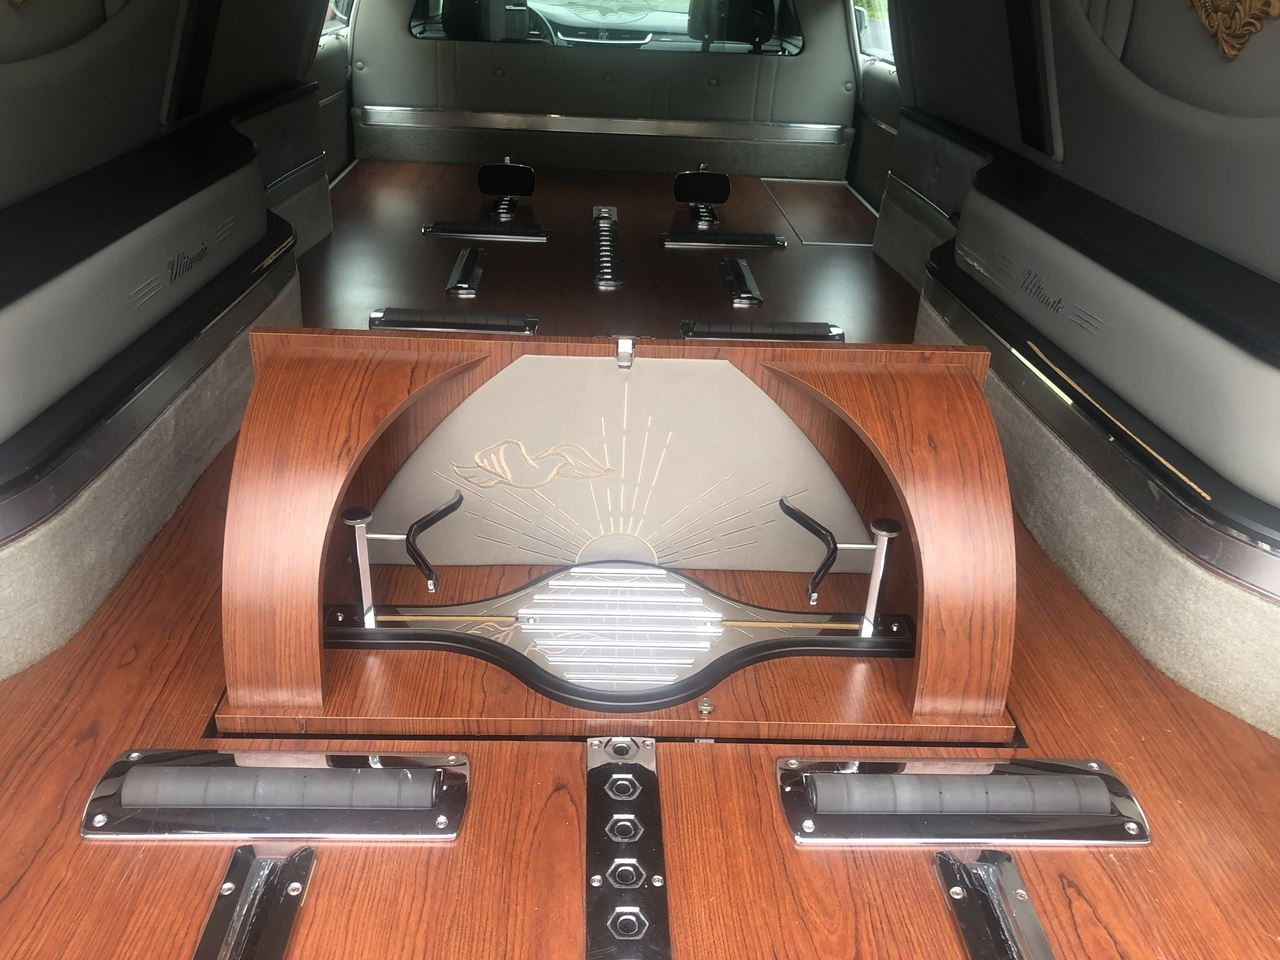 2014 Cadillac Eagle Ultimate Hearse 21 5